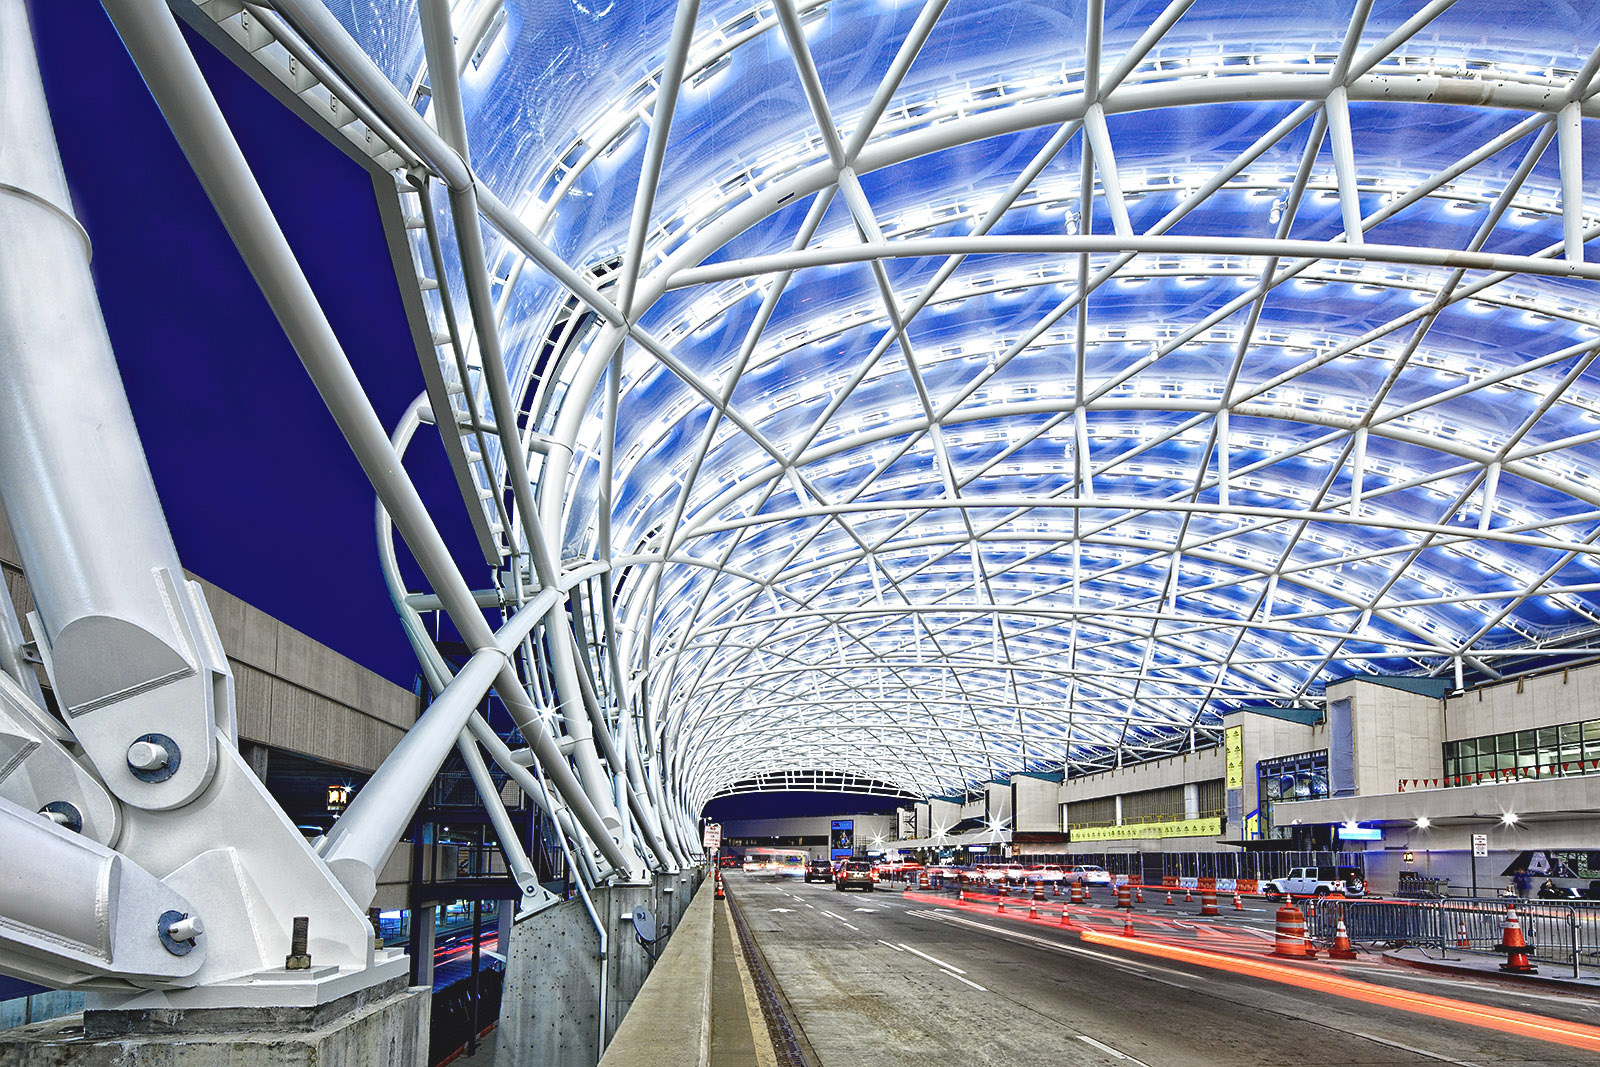 Exterior photography of the architectural design of the Hartfield Jackson Atlanta International Airport Canopies designed by HOK Architects. photo © Paul Dingman 2018. Paul Dingman is an architectural photographer based in Asia in China. He is a specialist in the photography of hotels, resorts, architectural design, and interior photography.